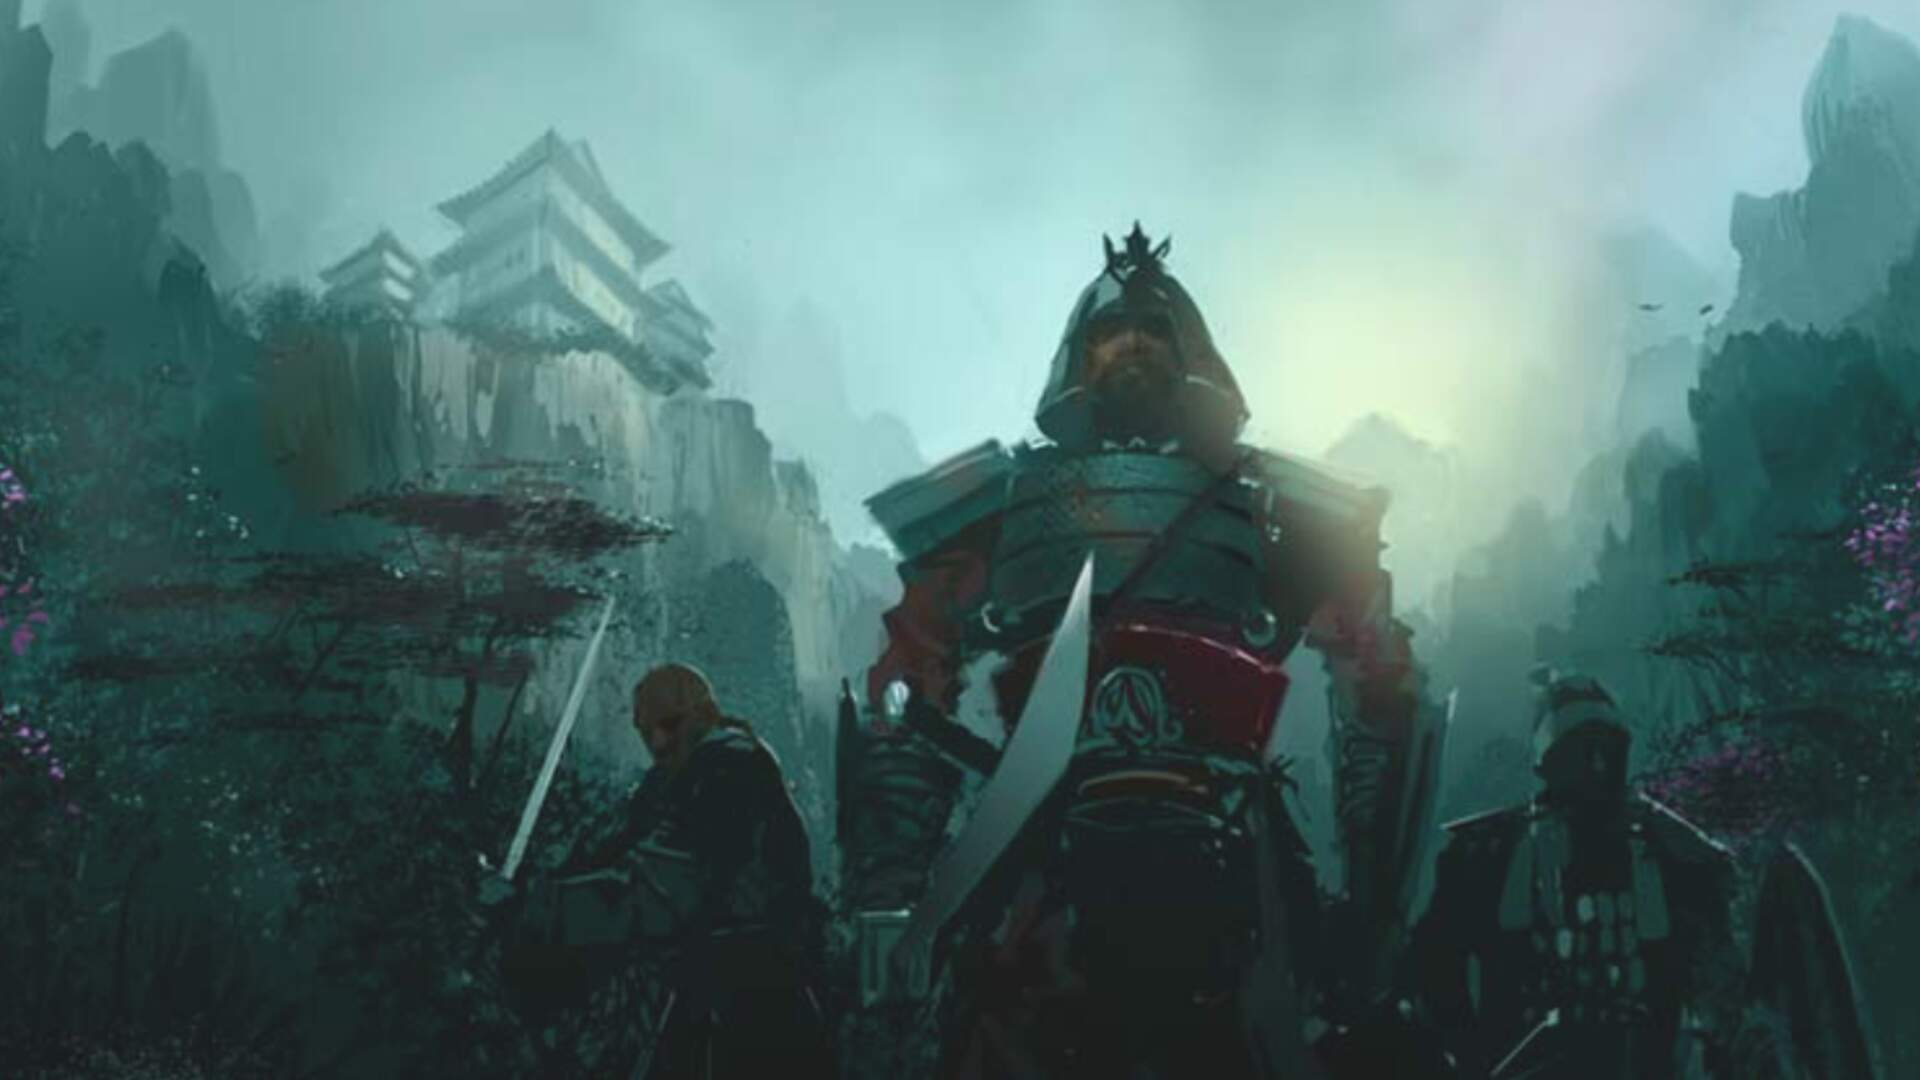 Why an Assassin's Creed Set in Japan Will Probably Remain an Impossible Dream for Fans